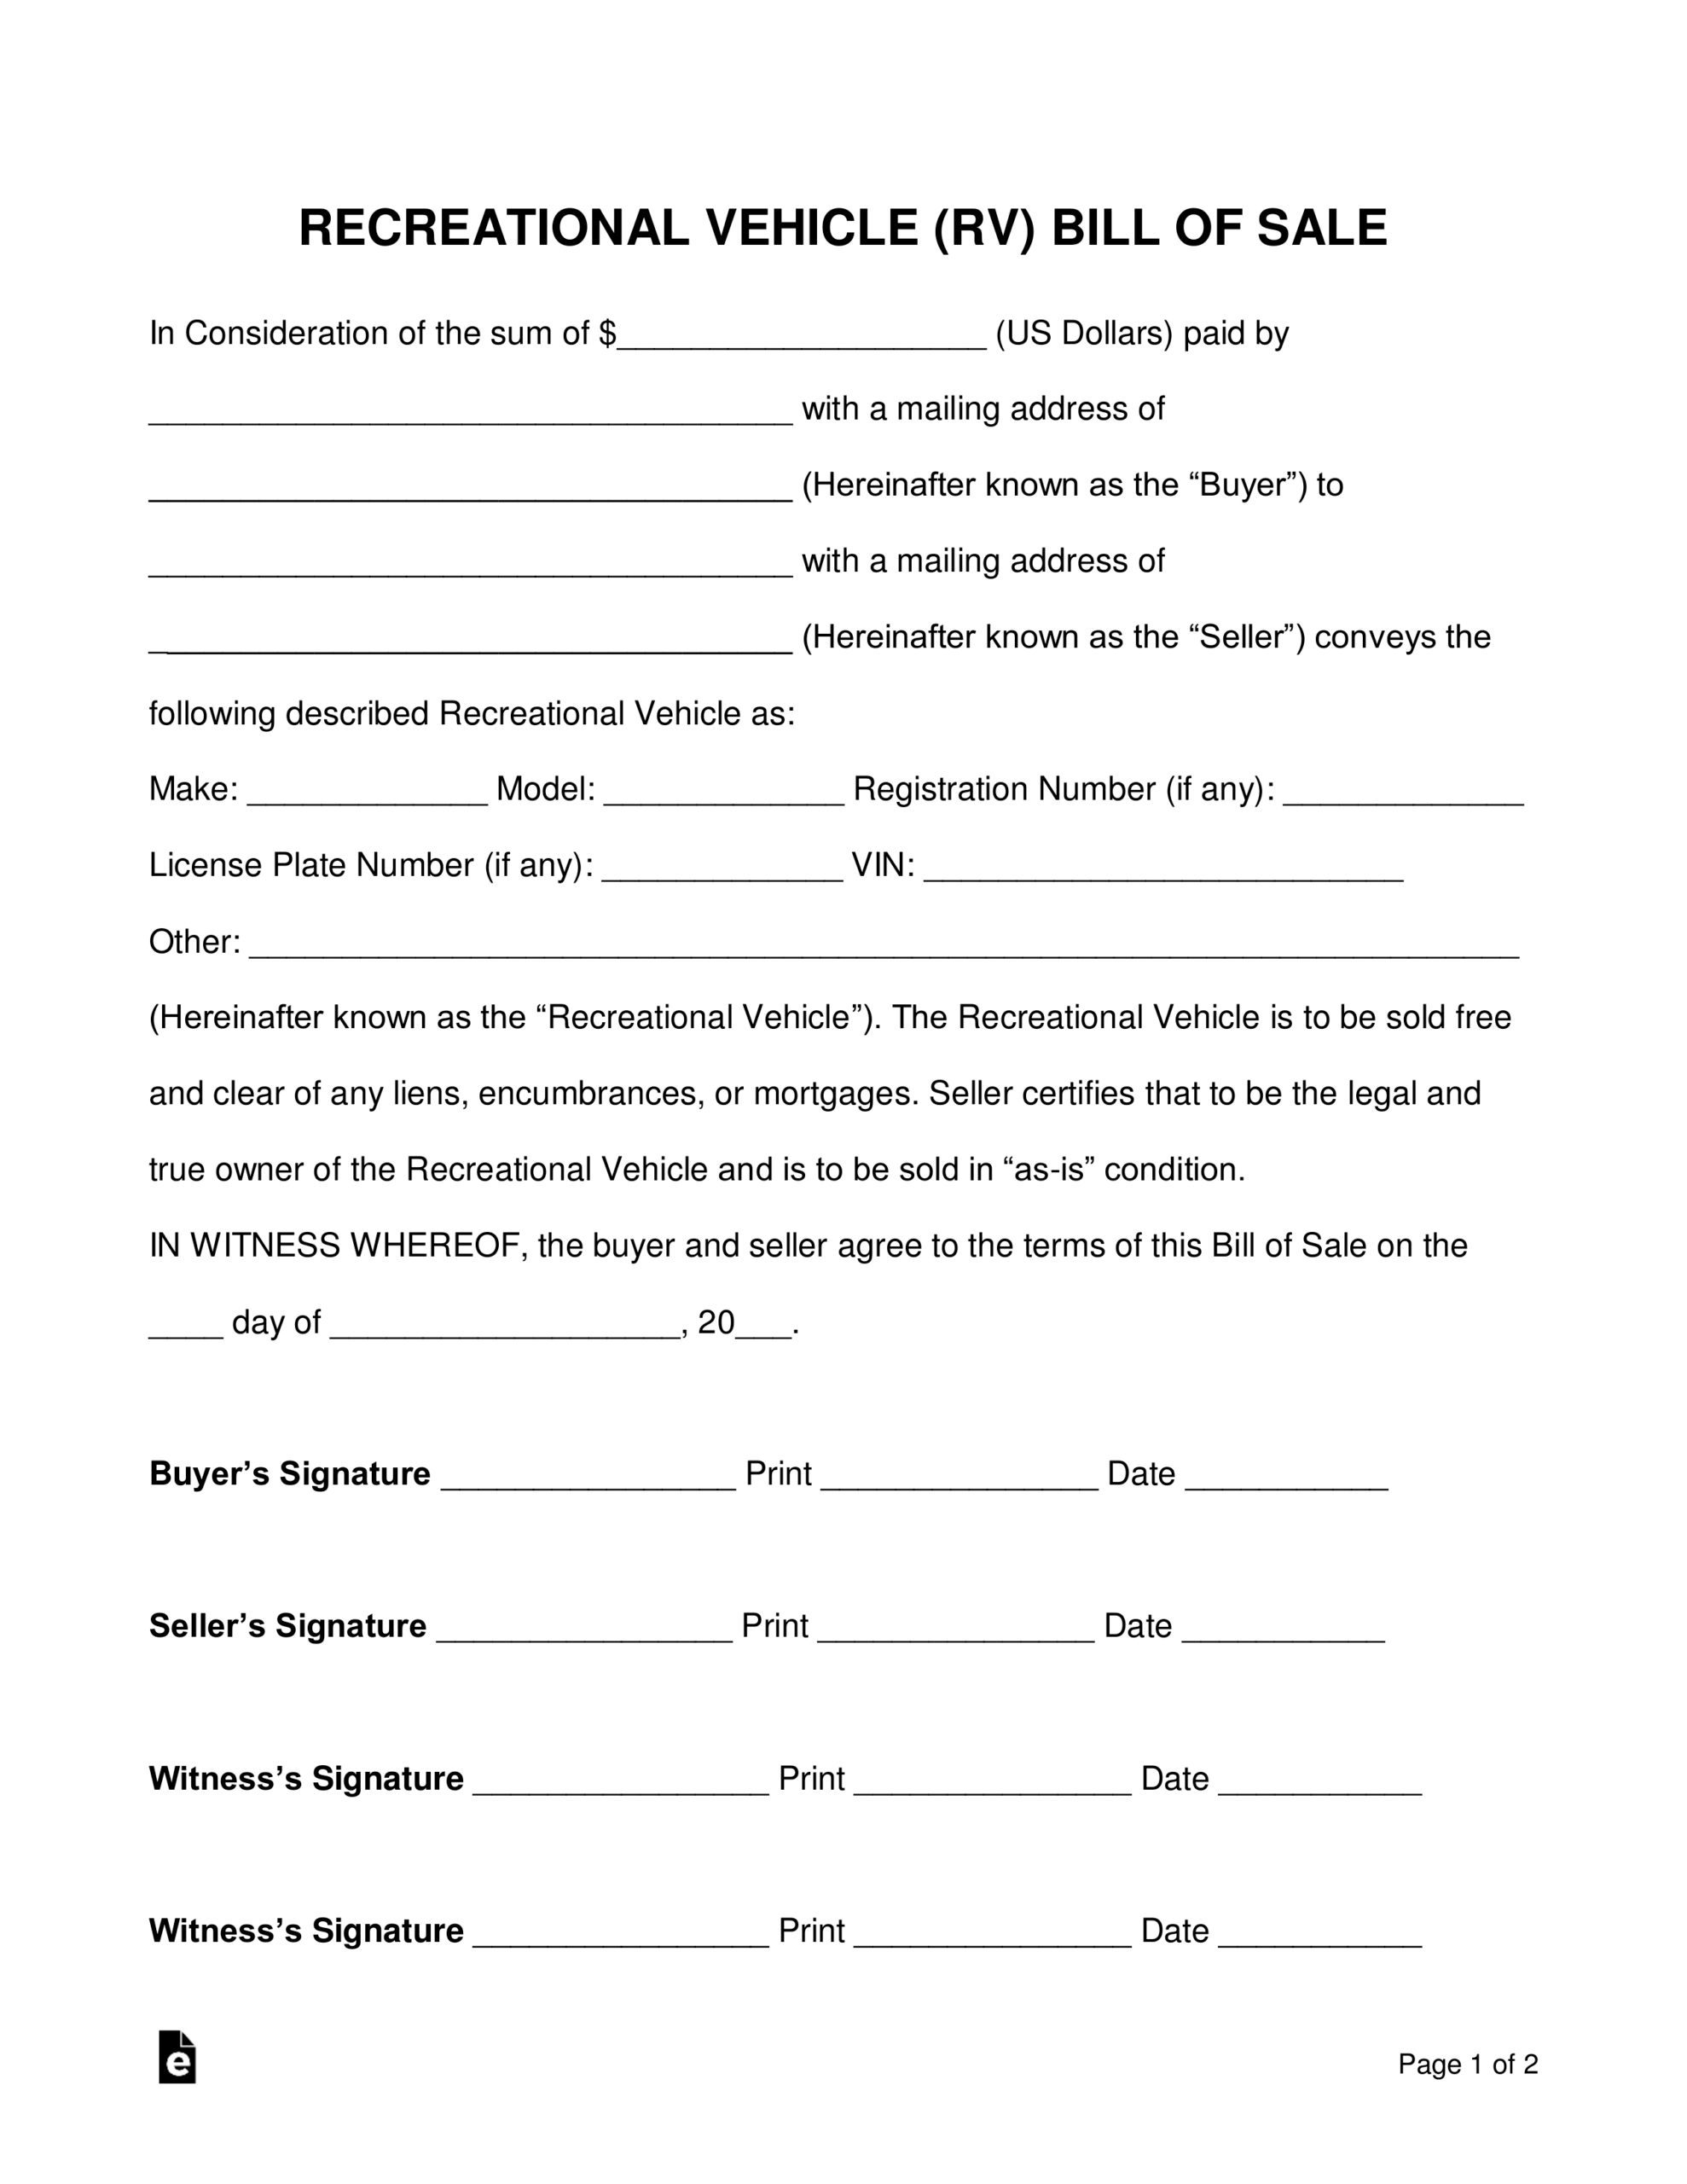 Free Recreational Vehicle (Rv) Bill Of Sale Form – Word Within Car Bill Of Sale Word Template